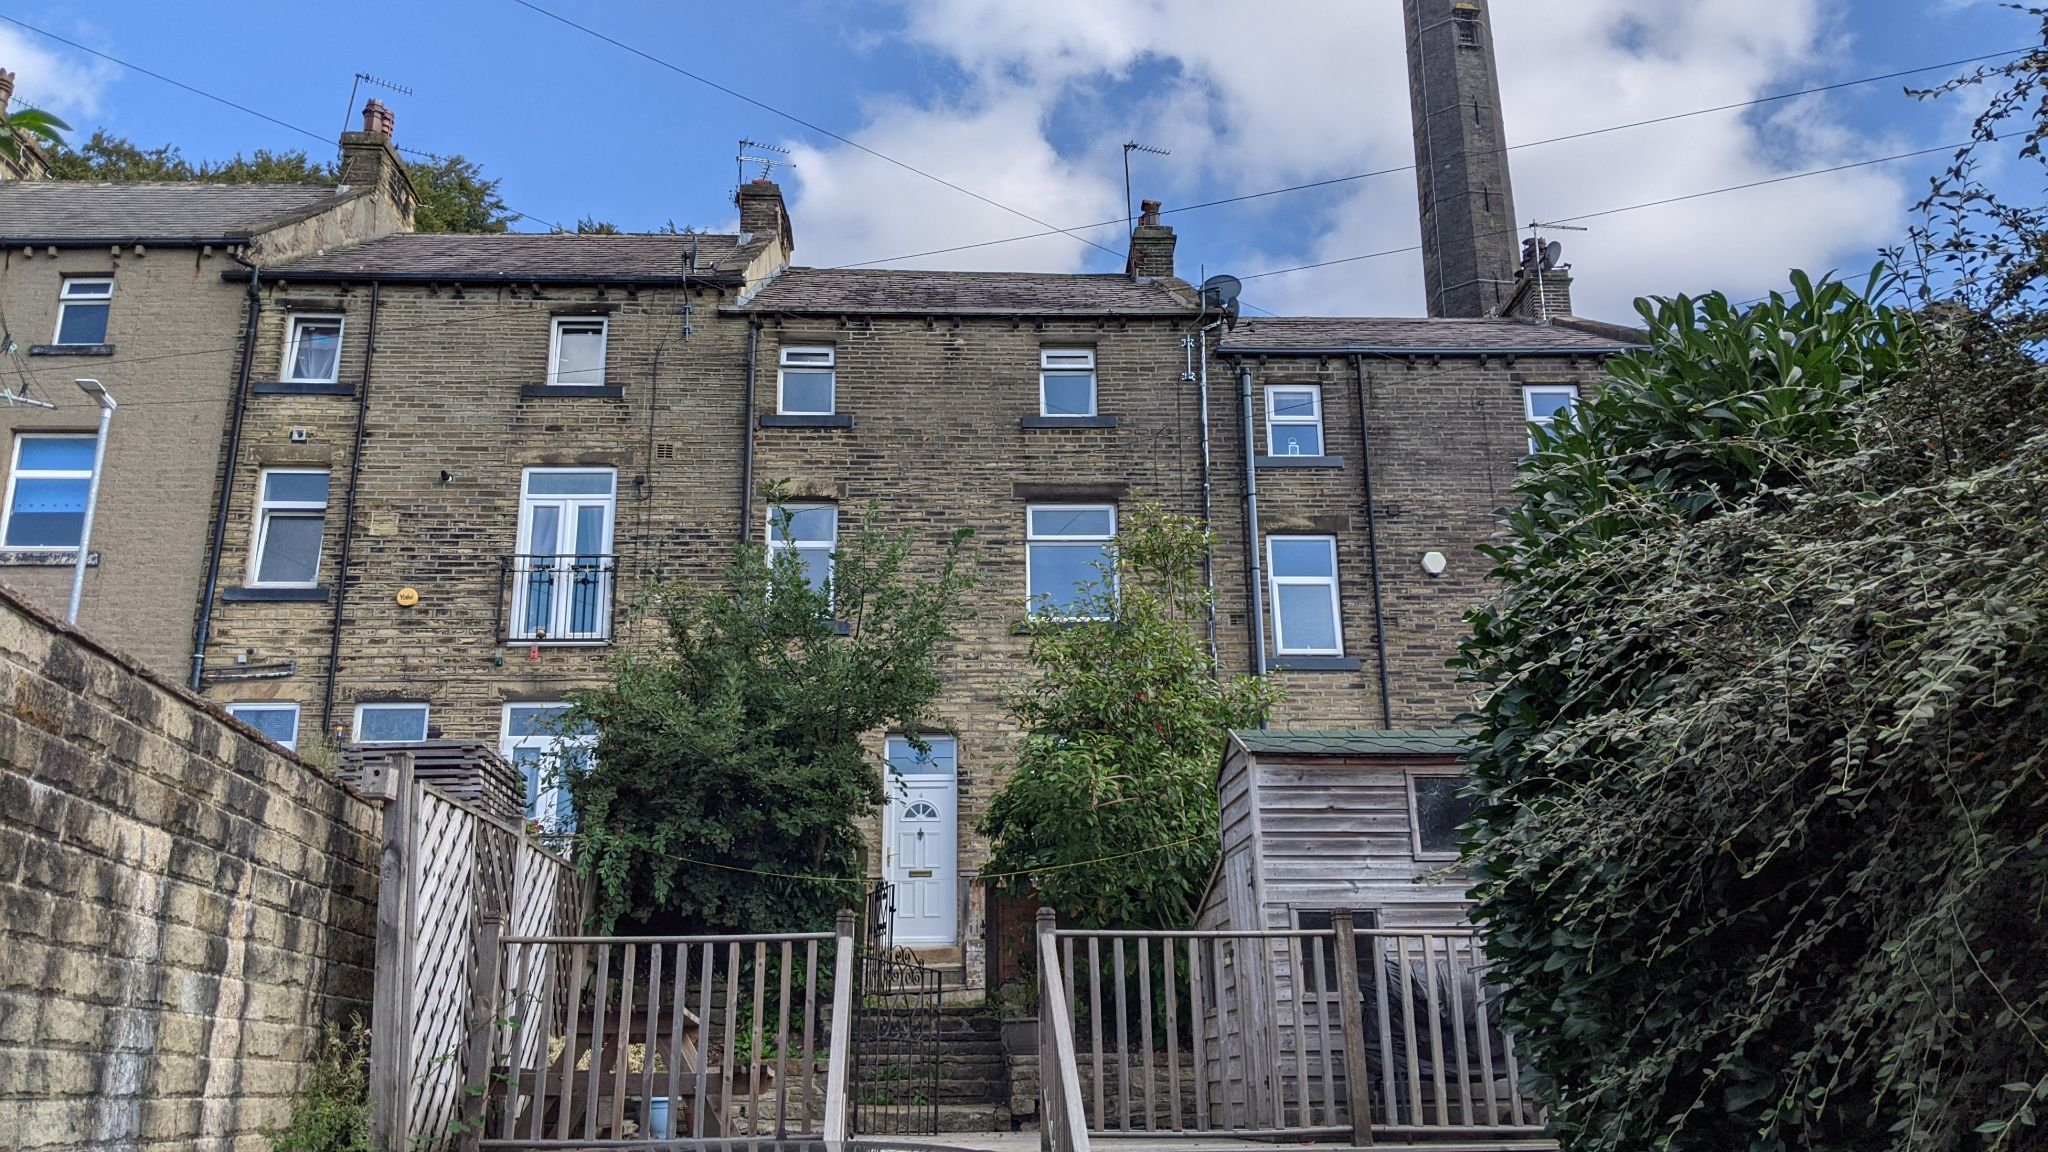 3 bedroom mid terraced house For Sale in Halifax - Photograph 1.